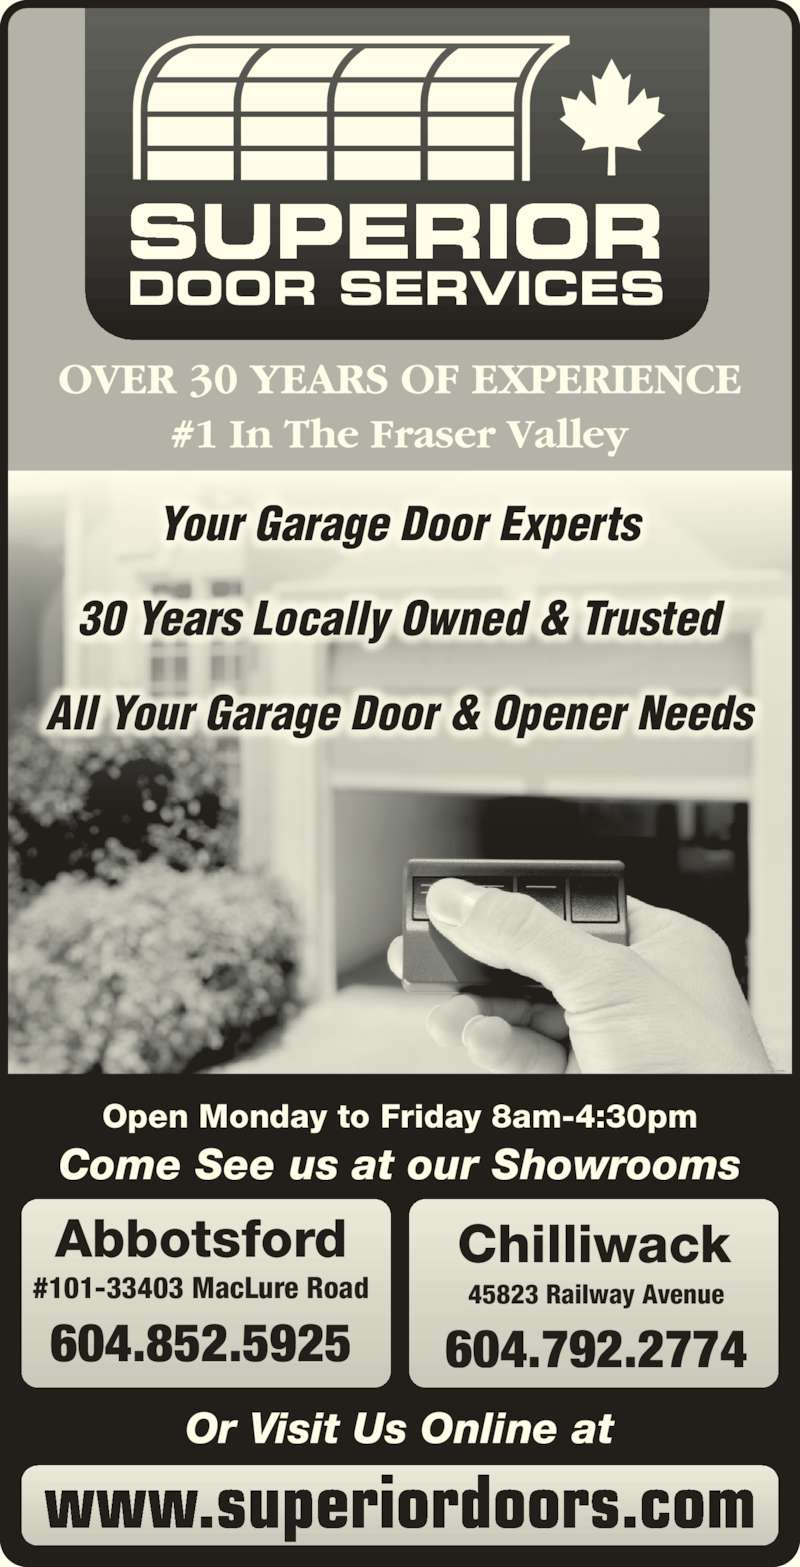 Superior Door Services (604-792-2774) - Display Ad - Chilliwack 45823 Railway Avenue 604.792.2774 Open Monday to Friday 8am-4:30pm Your Garage Door Experts 30 Years Locally Owned & Trusted All Your Garage Door & Opener Needs www.superiordoors.com Or Visit Us Online at Come See us at our Showrooms Abbotsford #101-33403 MacLure Road 604.852.5925 SUPERIOR DOOR SERVICES